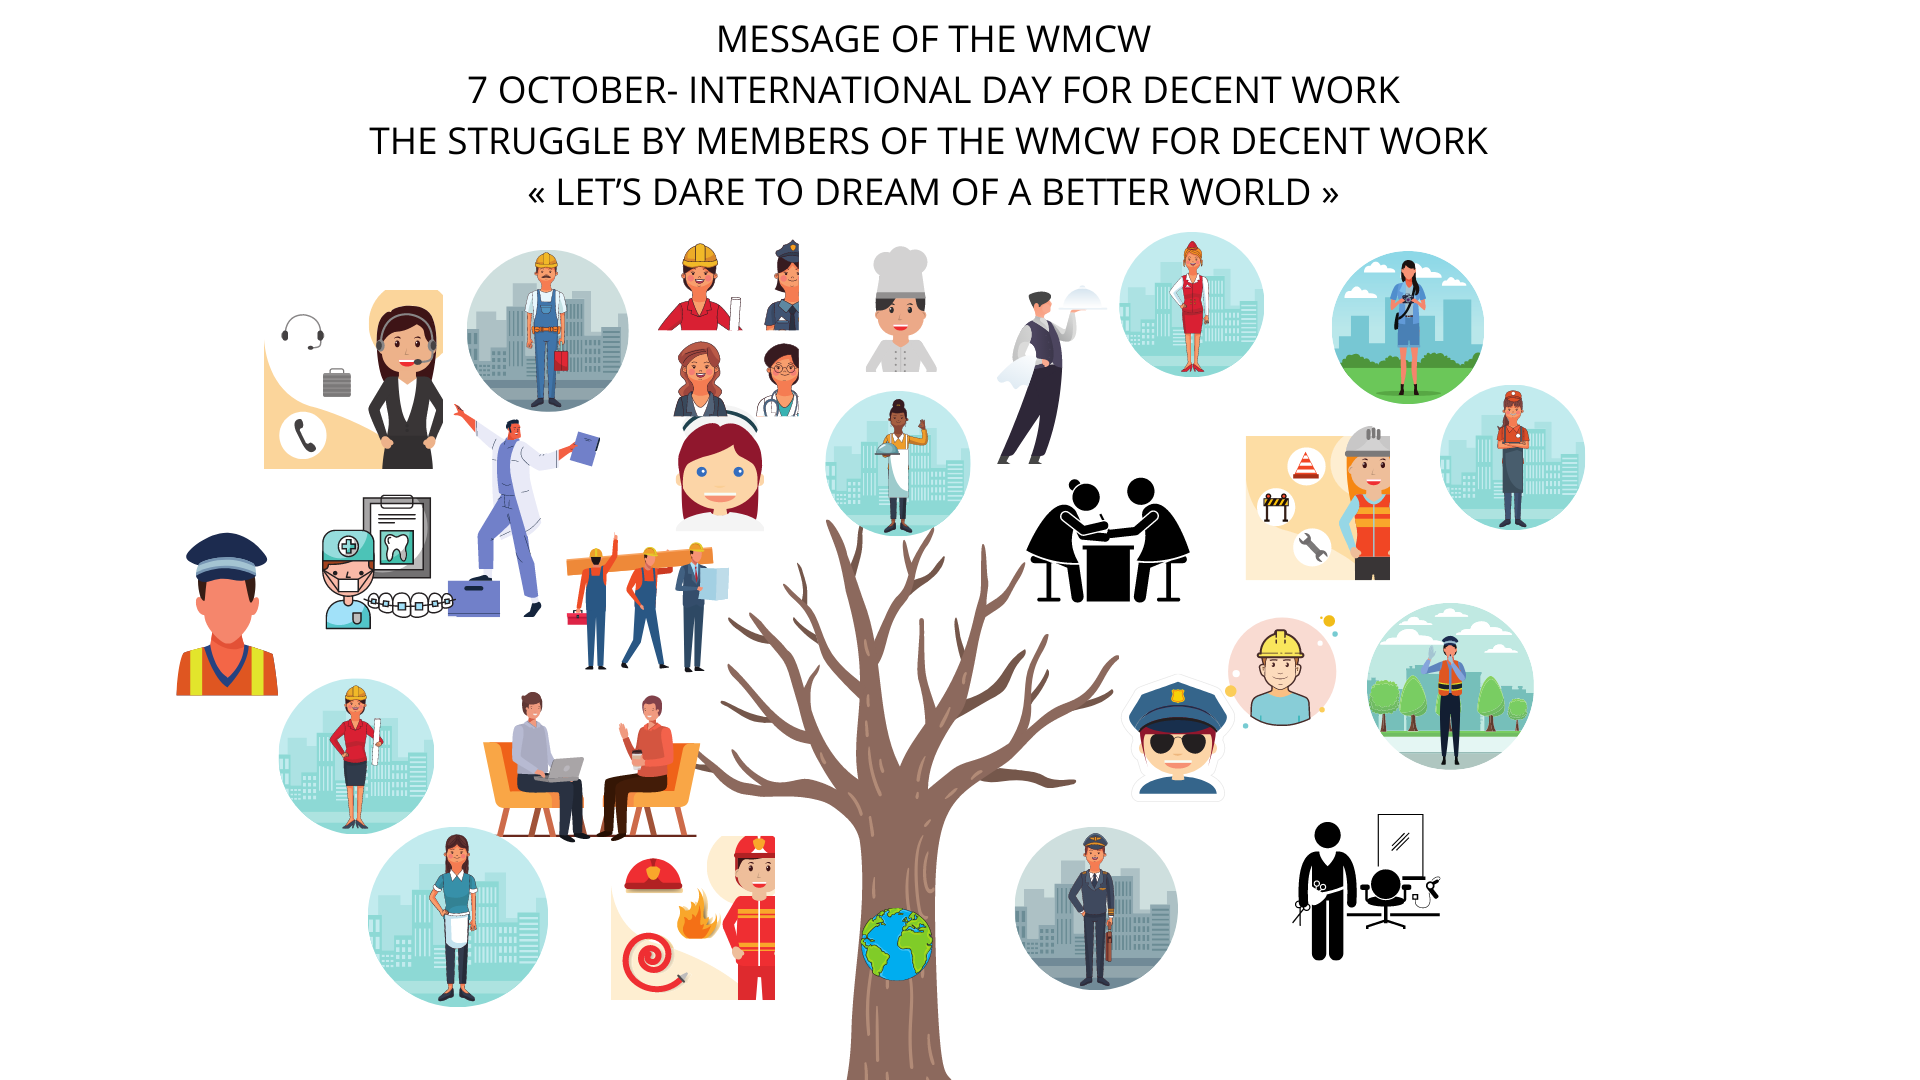 20.08.28 IMAGE MESSAGE OF THE WMCW 7 OCTOBER INTERNATIONAL DAY FOR DECENT WORK